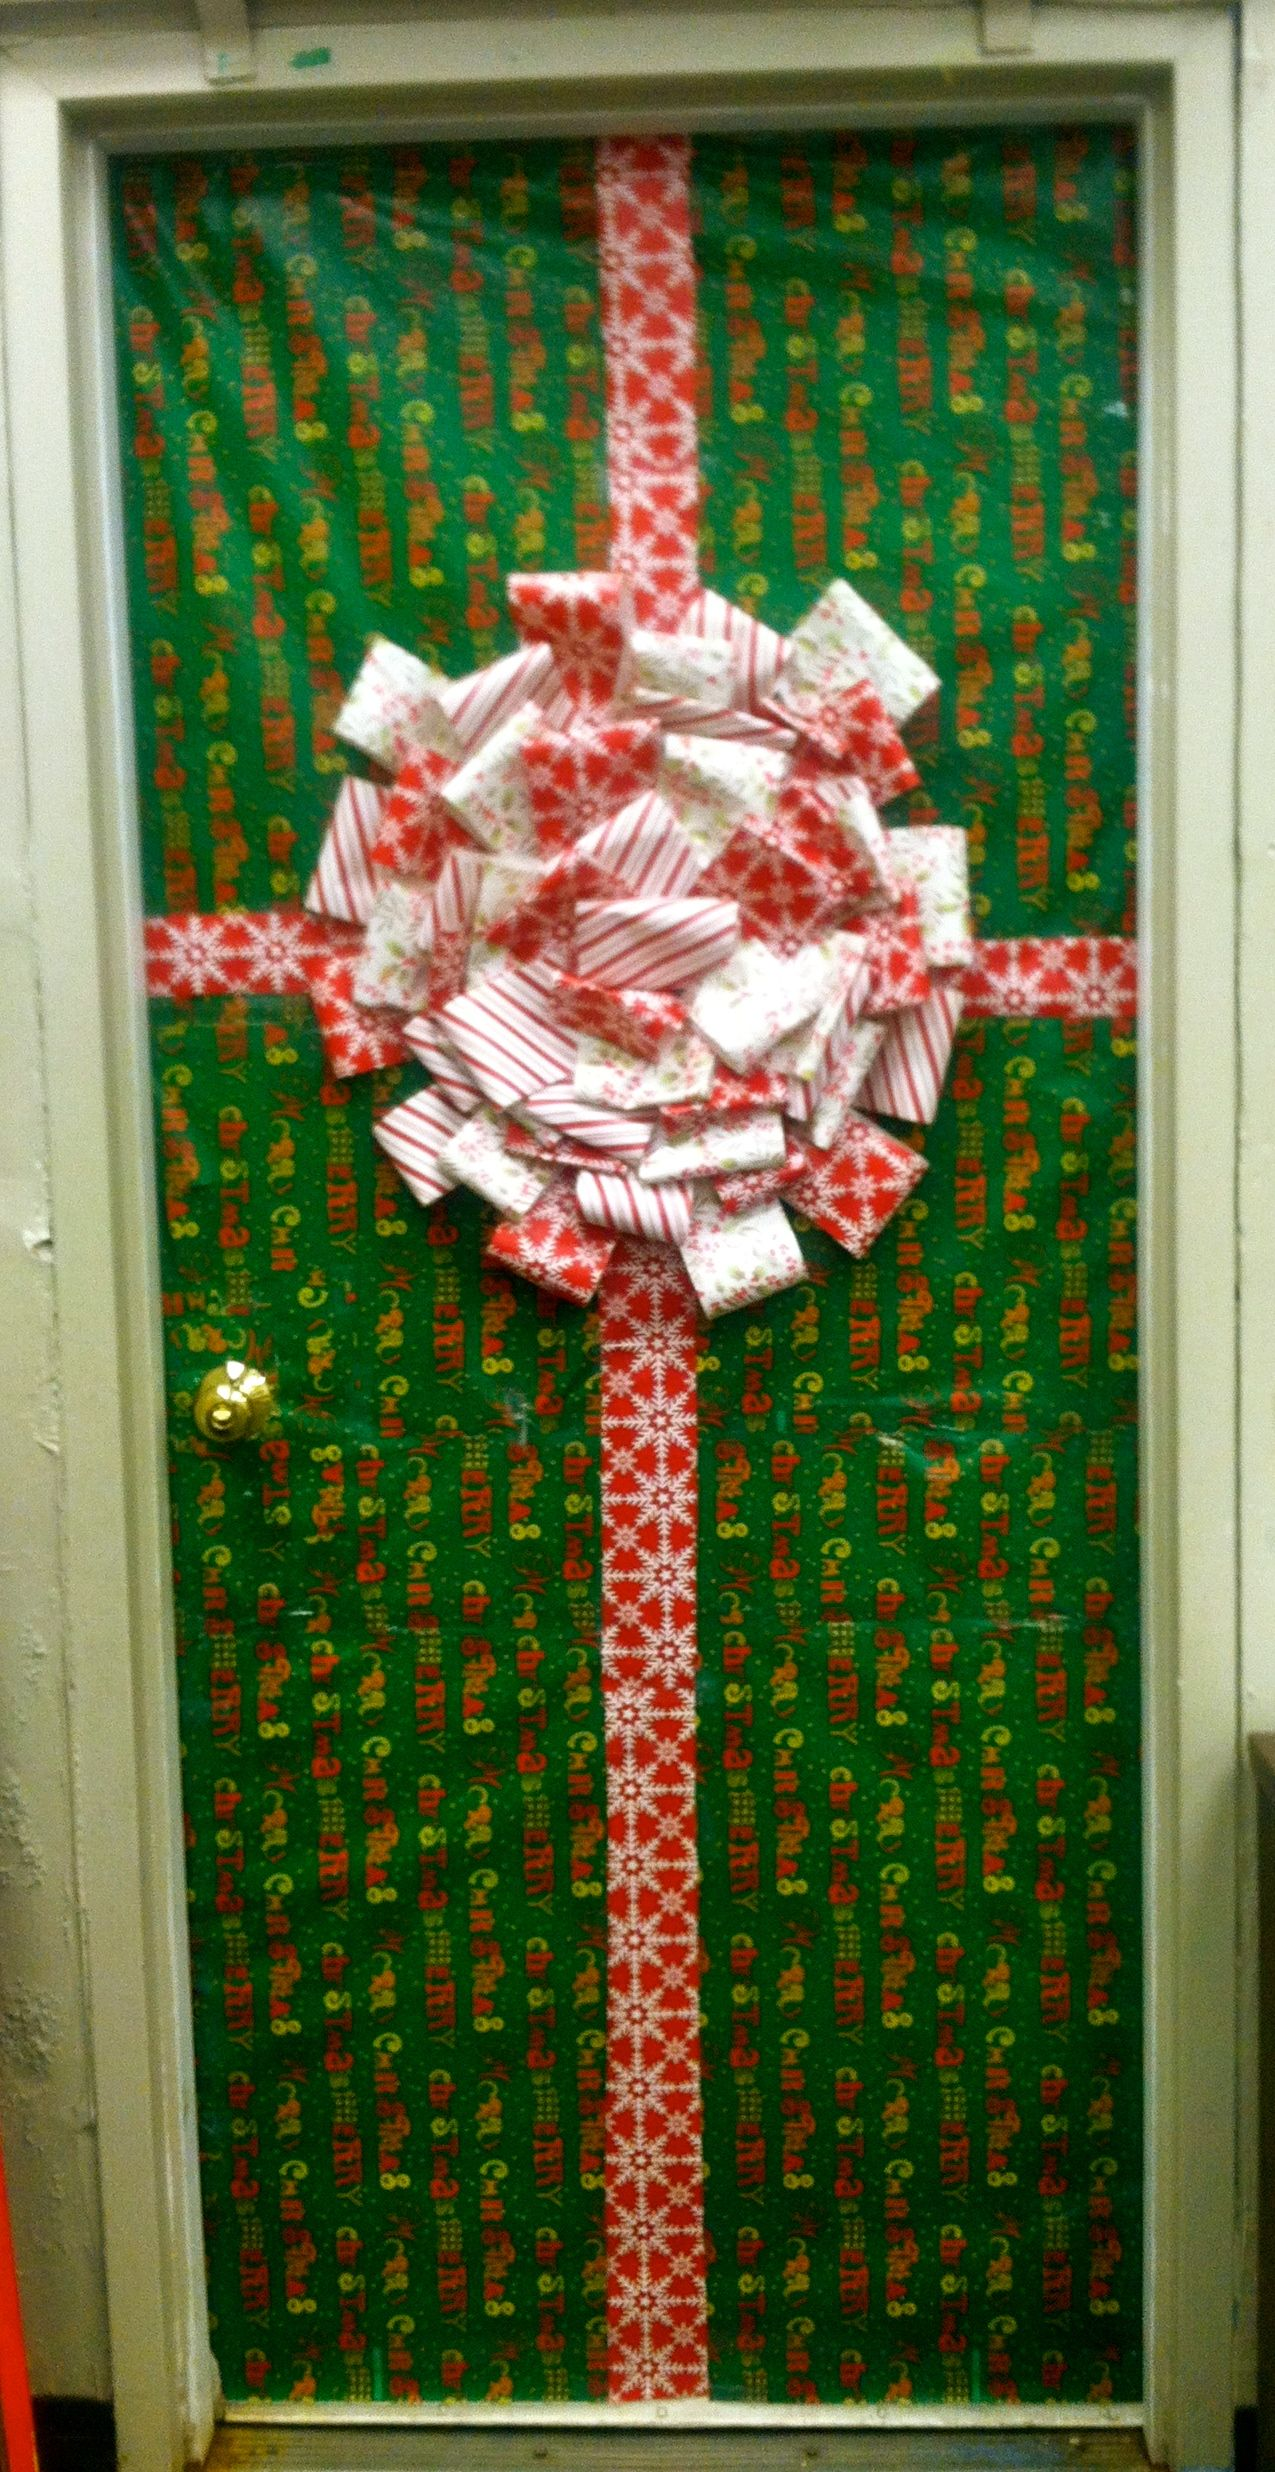 40 Classroom Christmas Decorations Ideas For 2016 School Holiday Door Decorations Christmas